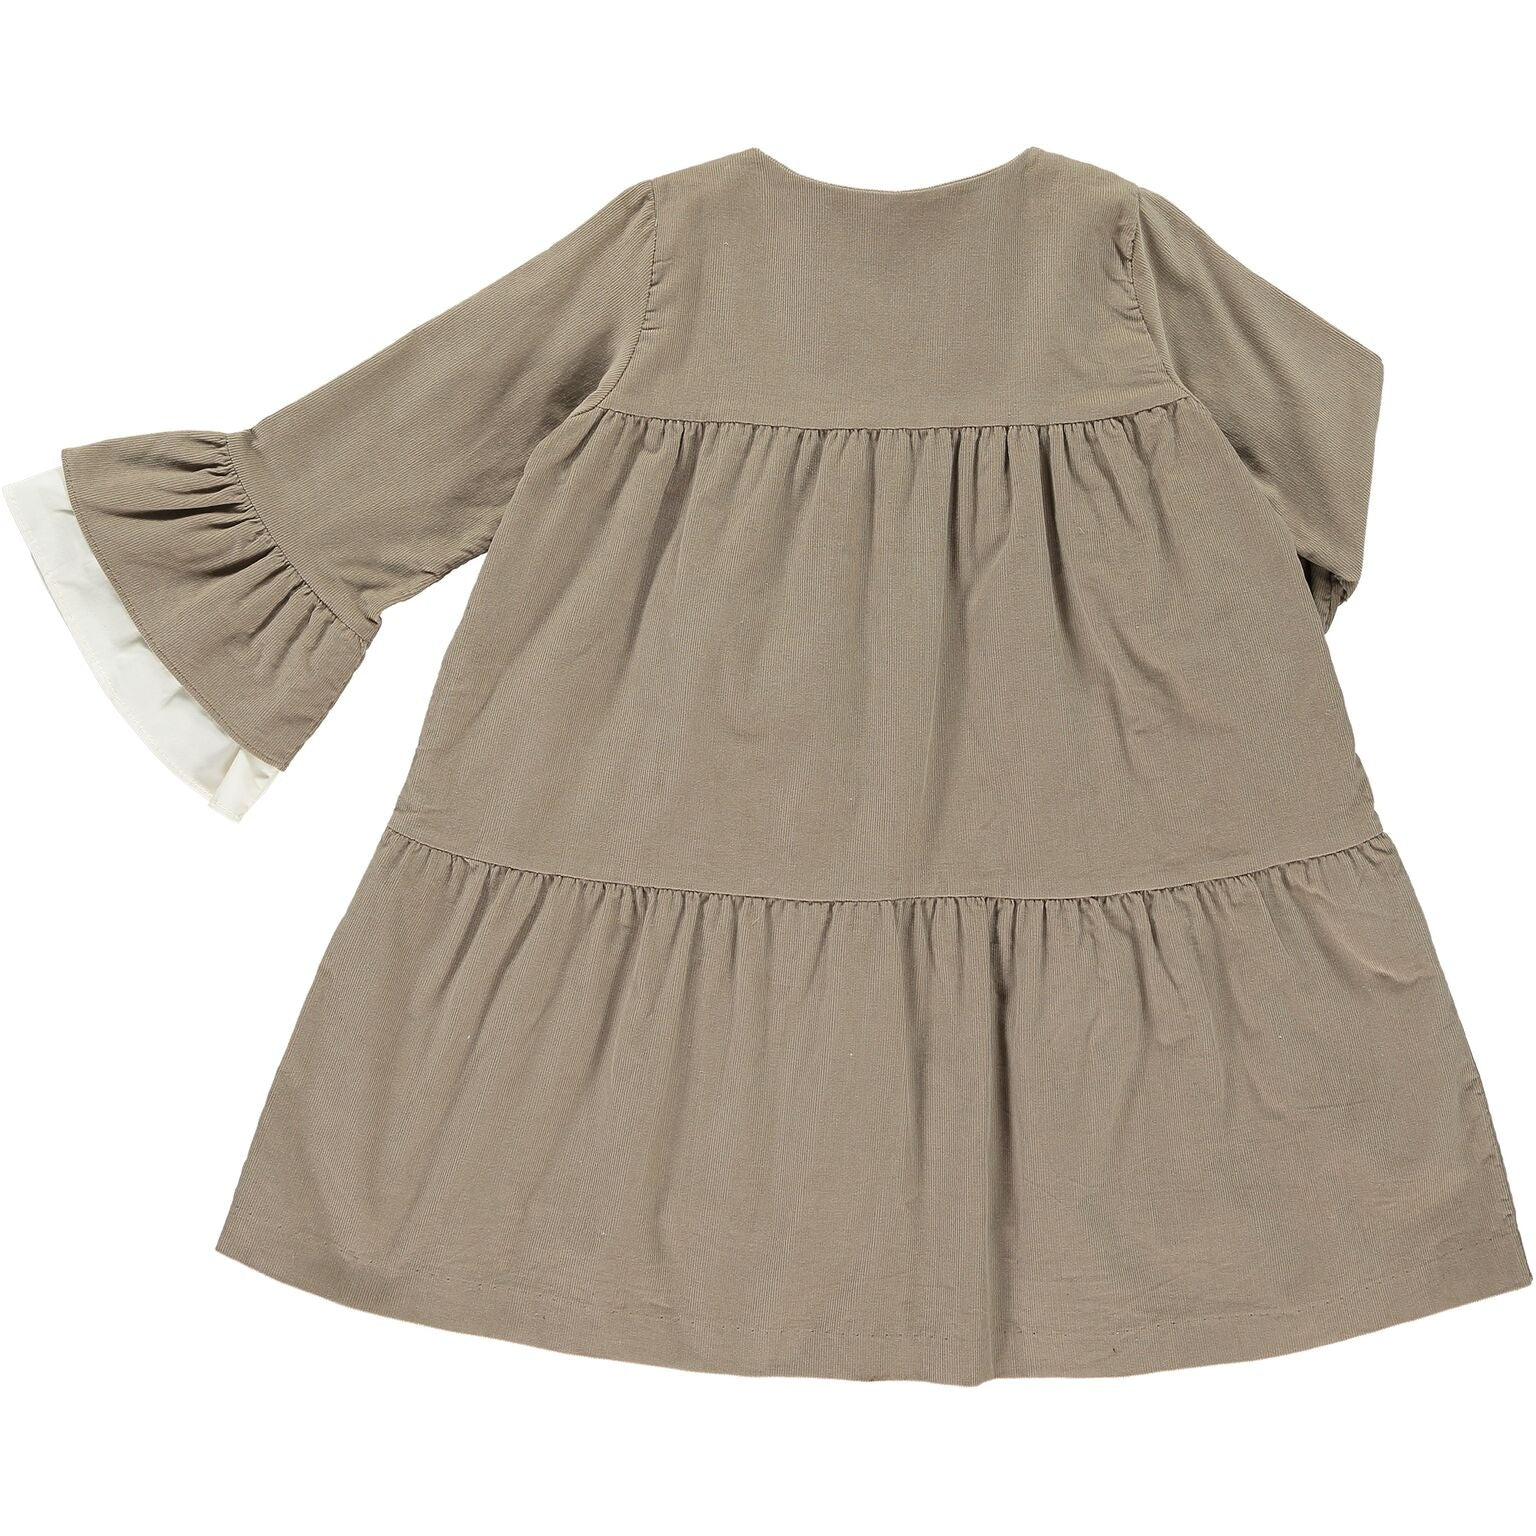 Tiered Camel Dress